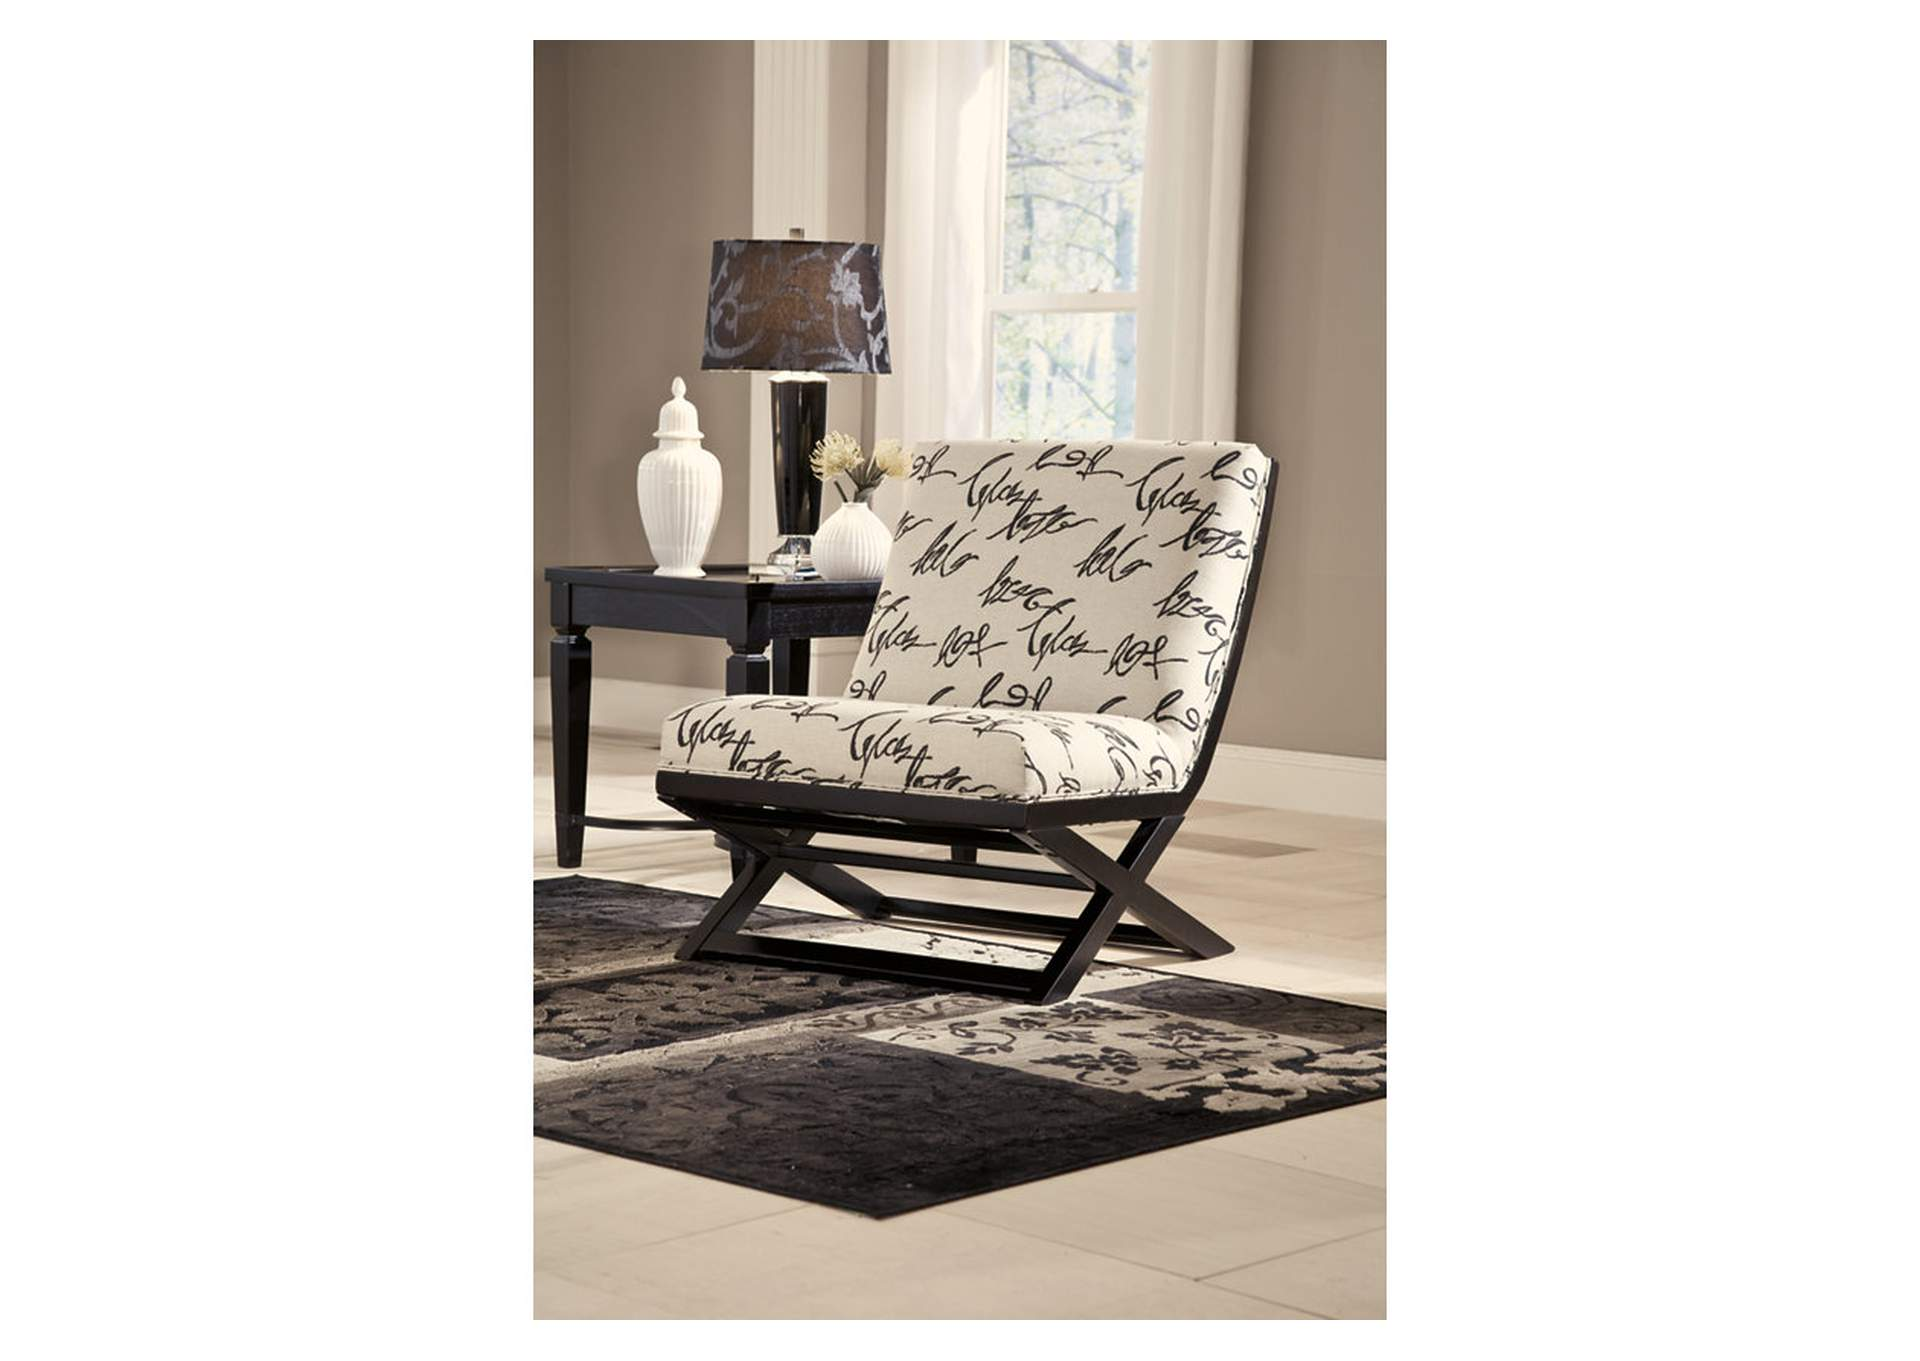 Harlem Furniture Manhattan Bronx Ny Levon Charcoal Showood Accent Chair